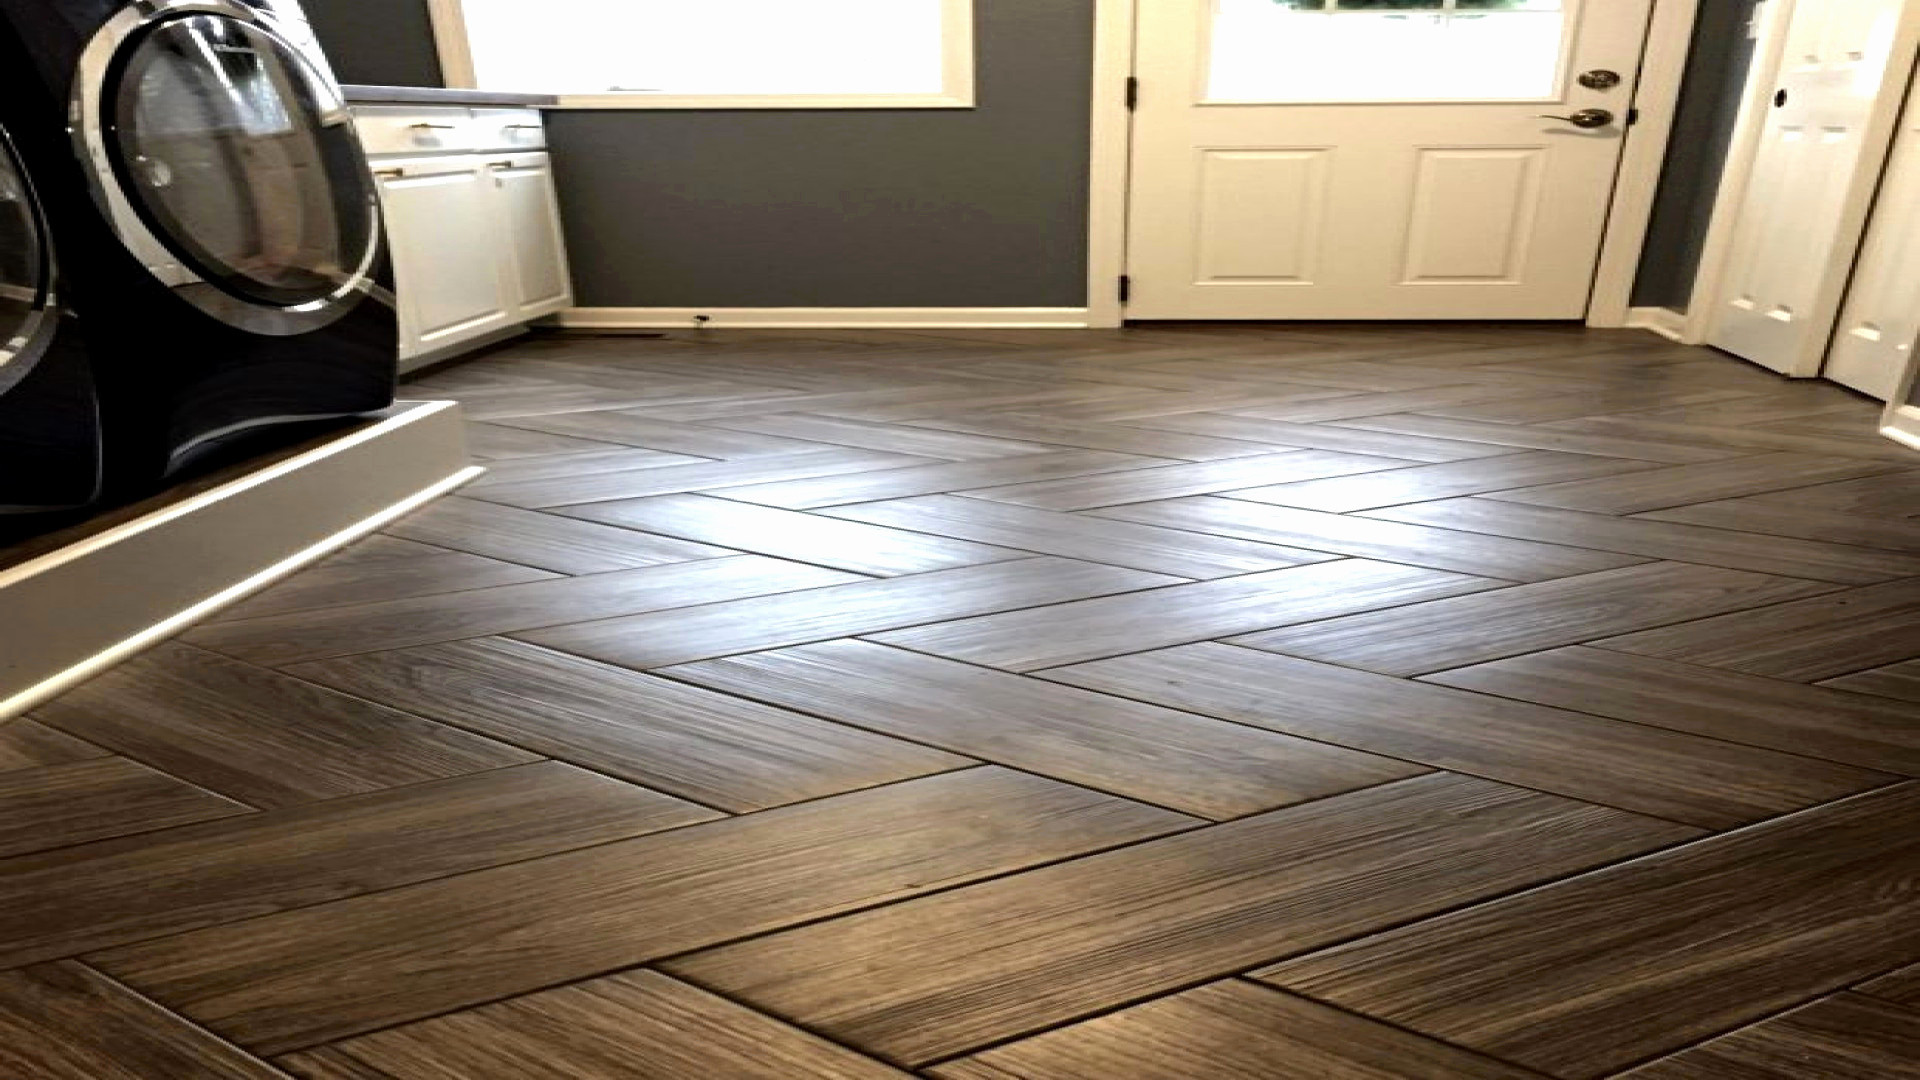 wood tile flooring vs hardwood of wood tile kitchen athomeforhire com within wood tile kitchen astonishing wood tile kitchen in addition to wood tile astonishing tile kitchen